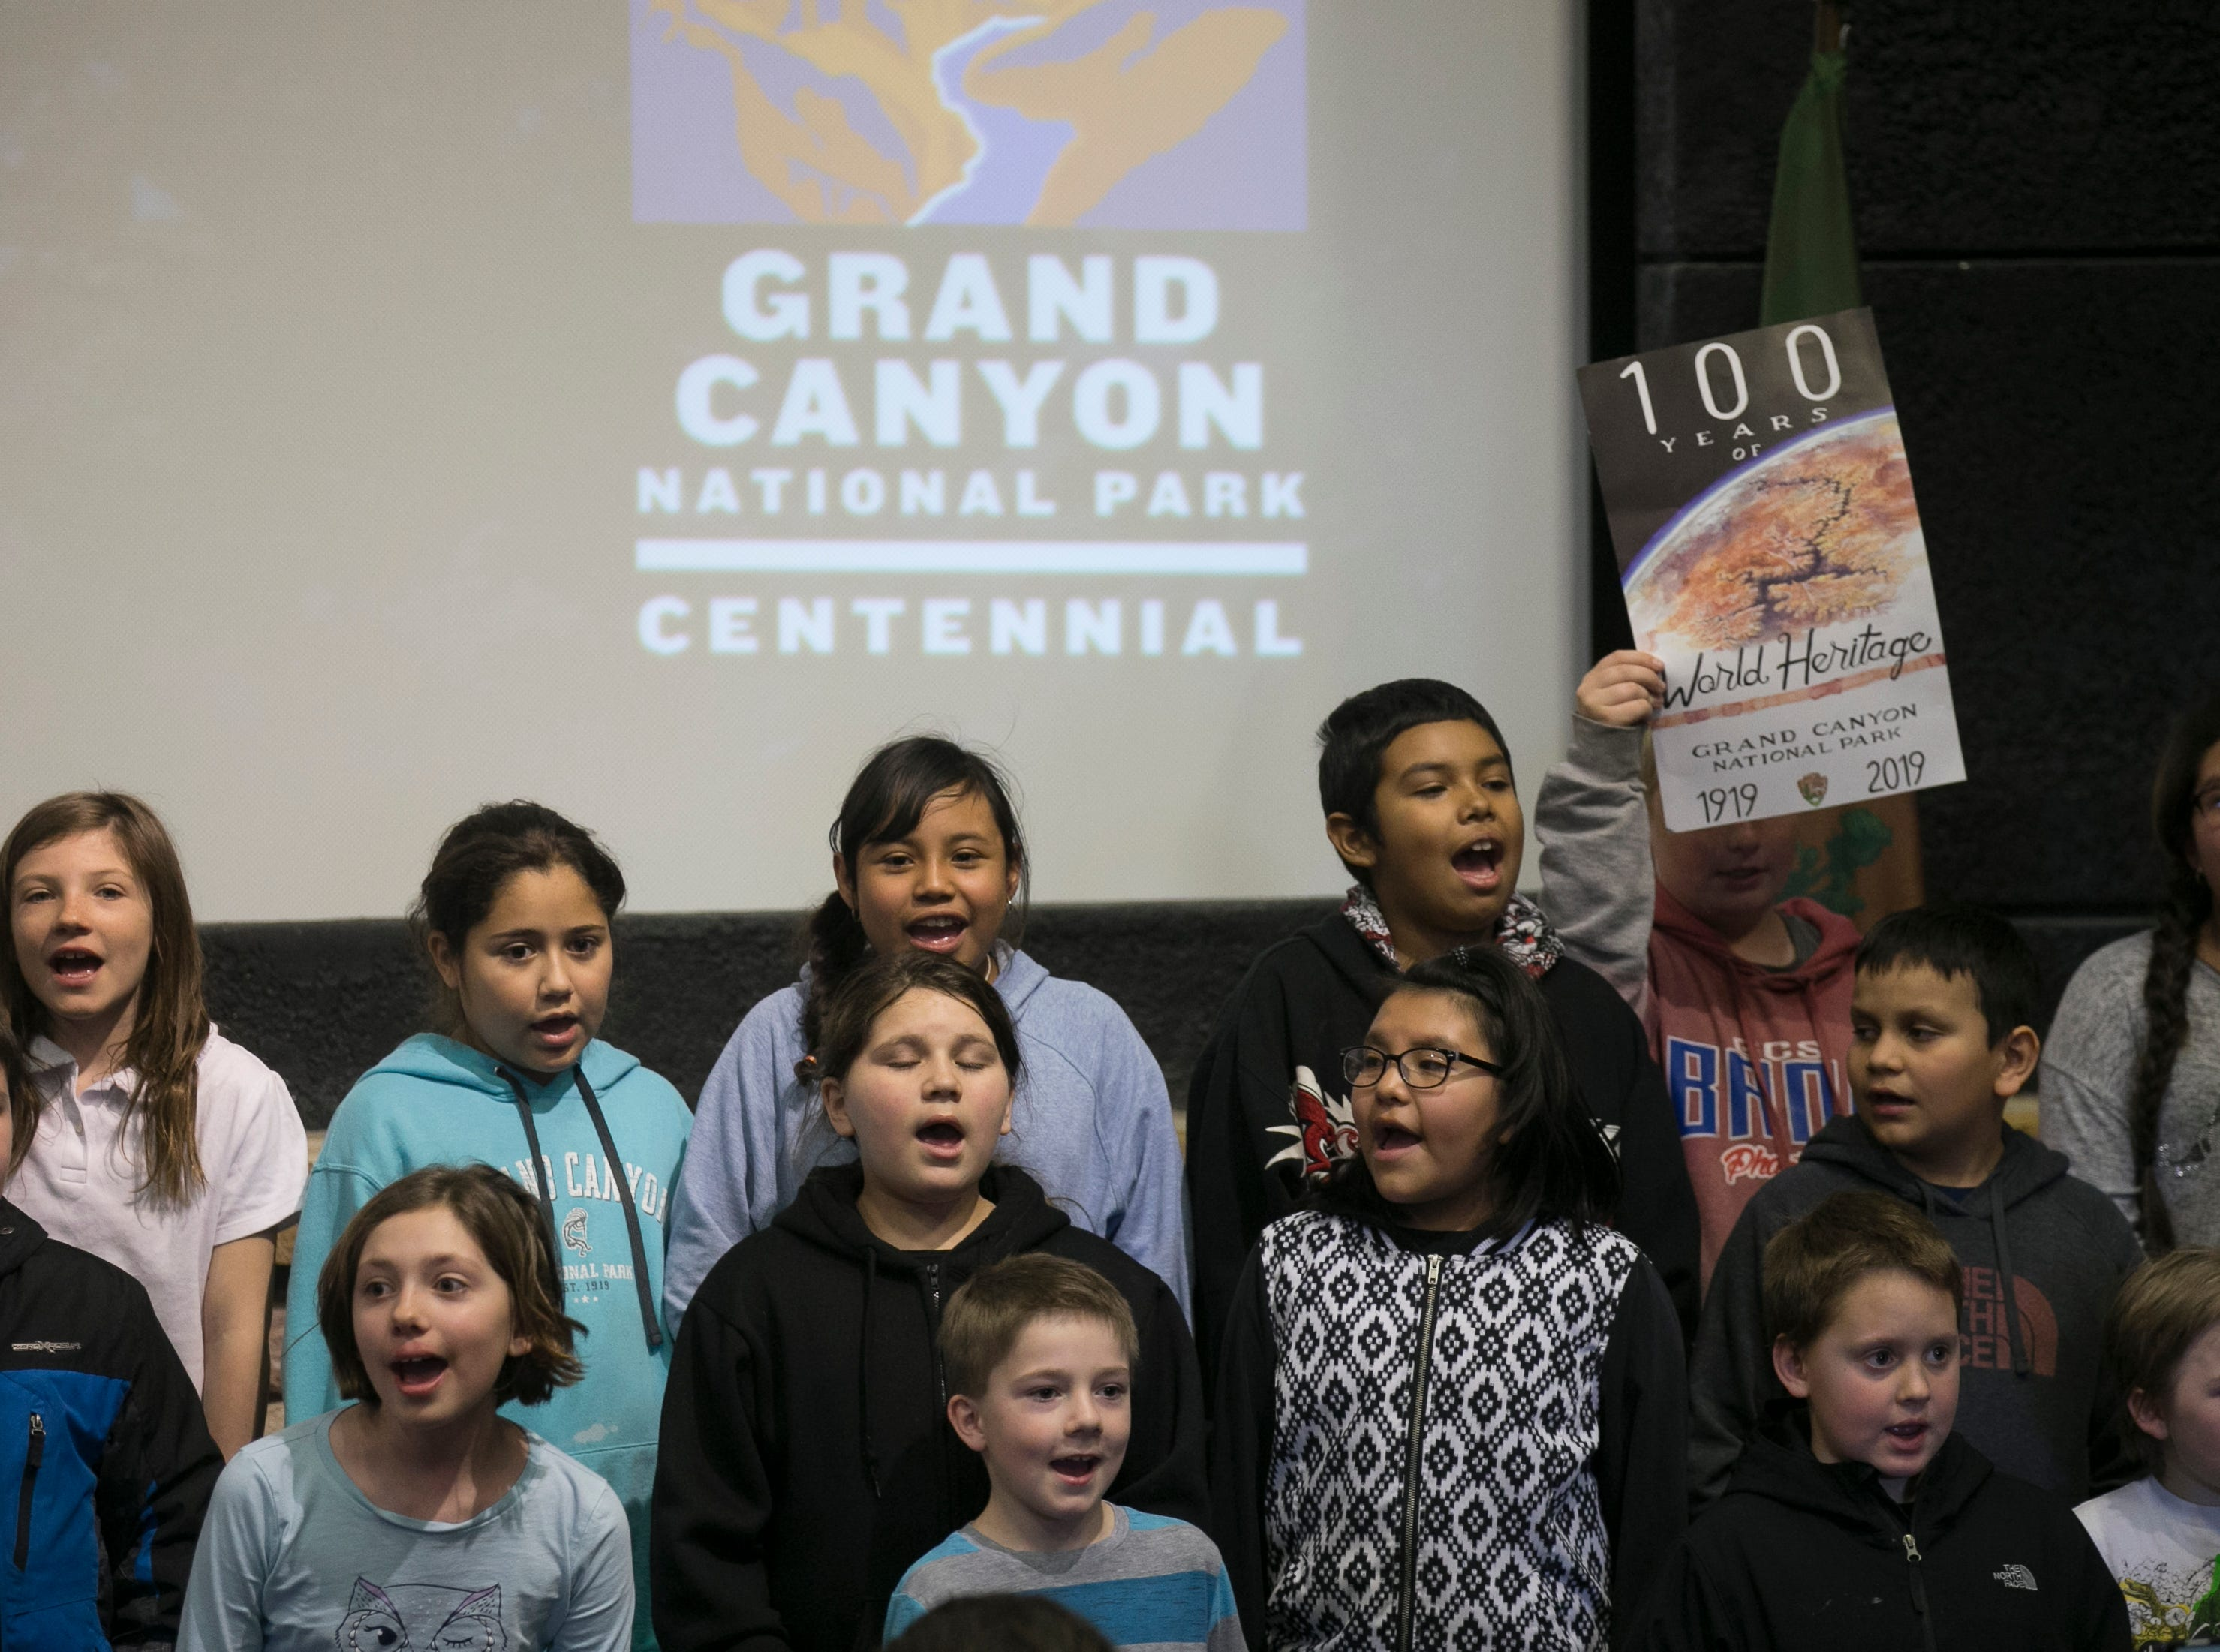 """Fourth-graders from Grand Canyon Elementary sing """"Happy Birthday"""" at the Grand Canyon during the park's 100th anniversary celebration on Feb. 26, 2019."""